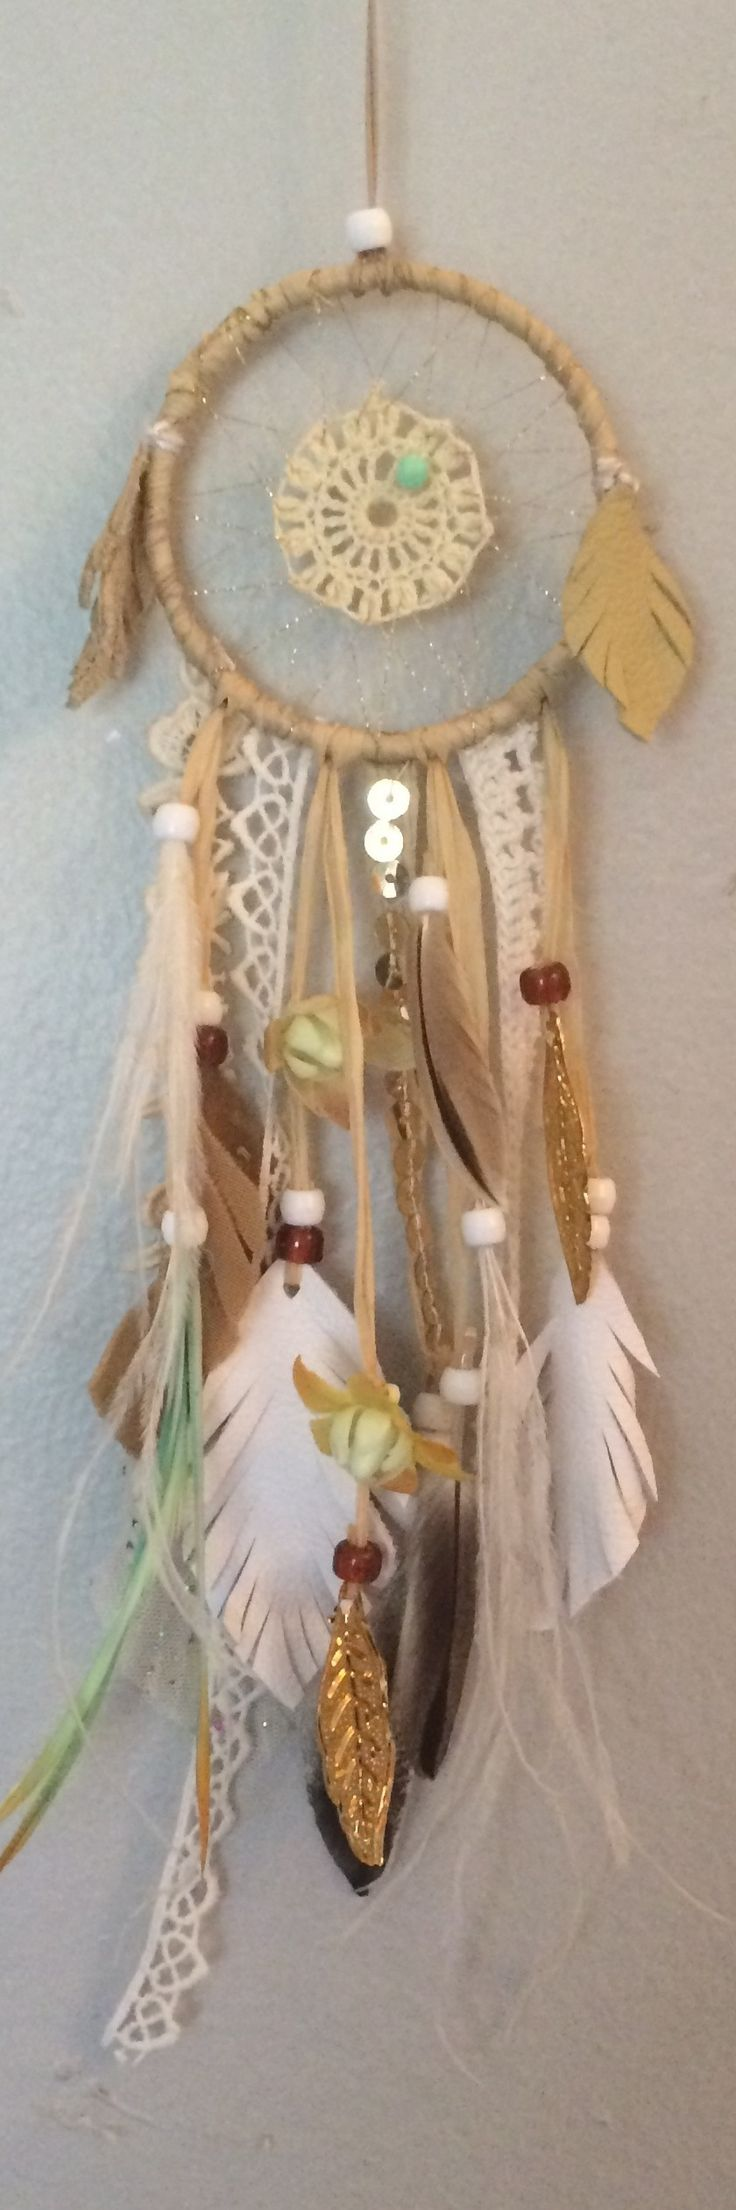 sparkling mini #dreamcatcher by Rachael Rice: https://www.etsy.com/listing/170409771/sparkling-mini-dreamcatcher-with-gold?